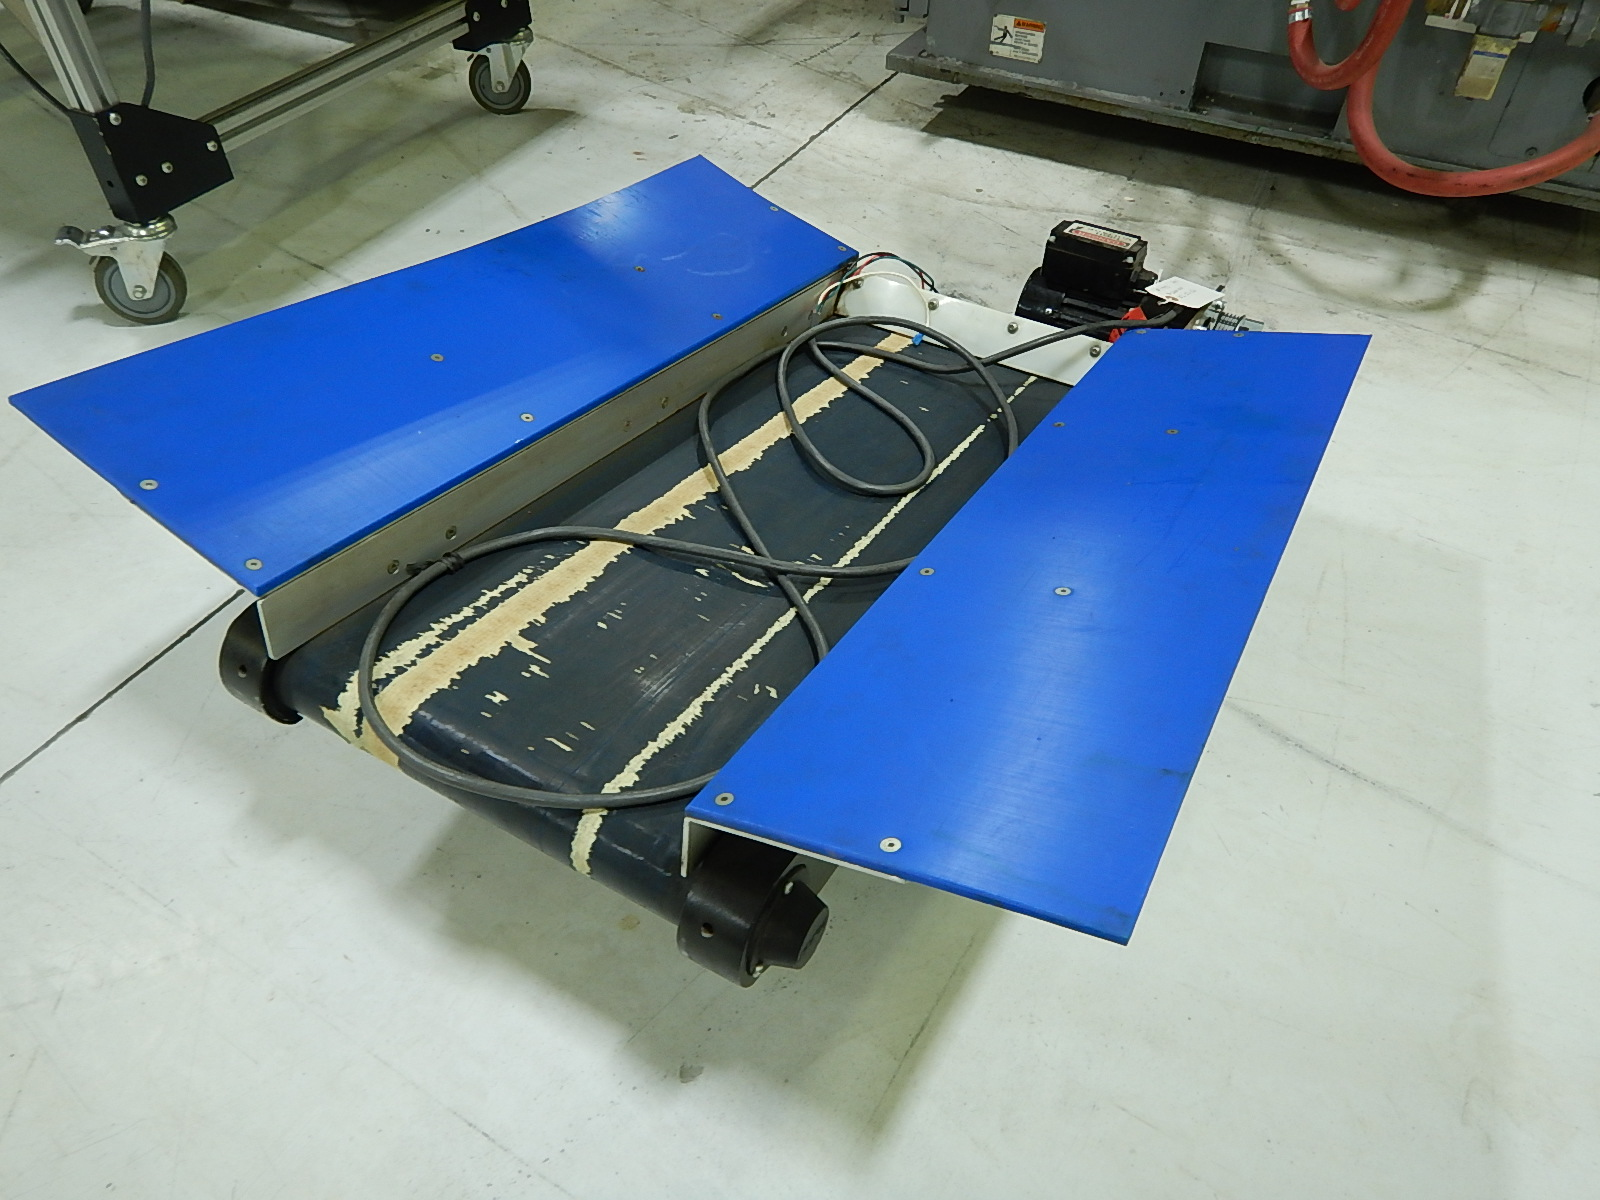 HFA 2210 Conveyor, Horizontal Style, 32 in. long x 12 in. wide, 110V, Yr. 2011 - PARTS ONLY